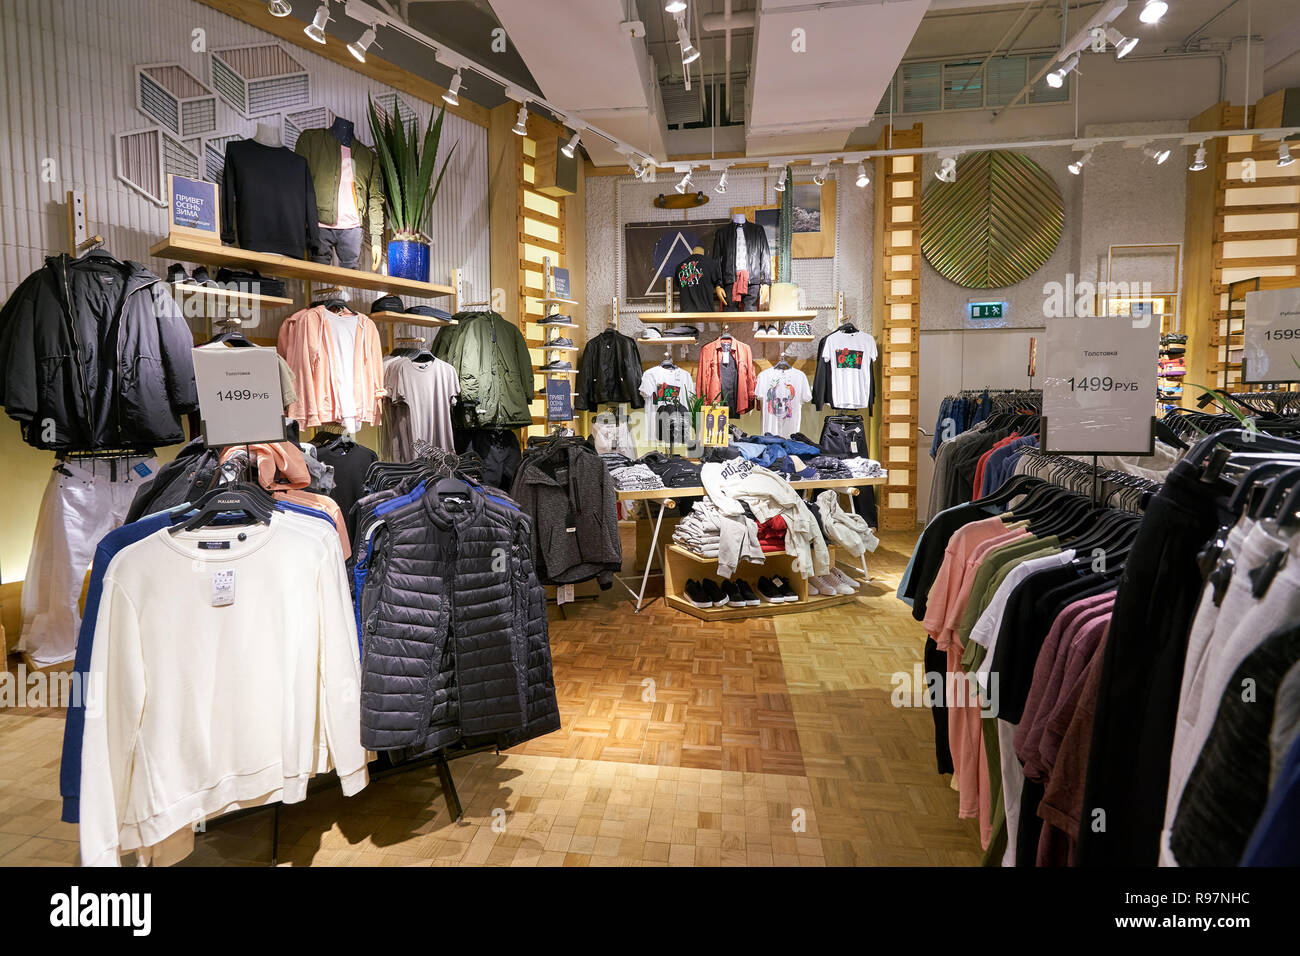 SAINT PETERSBURG, RUSSIA - CIRCA AUGUST, 2017: inside Pull&Bear store at Galeria shopping center. Pull&Bear is a Spanish clothing and accessories reta - Stock Image